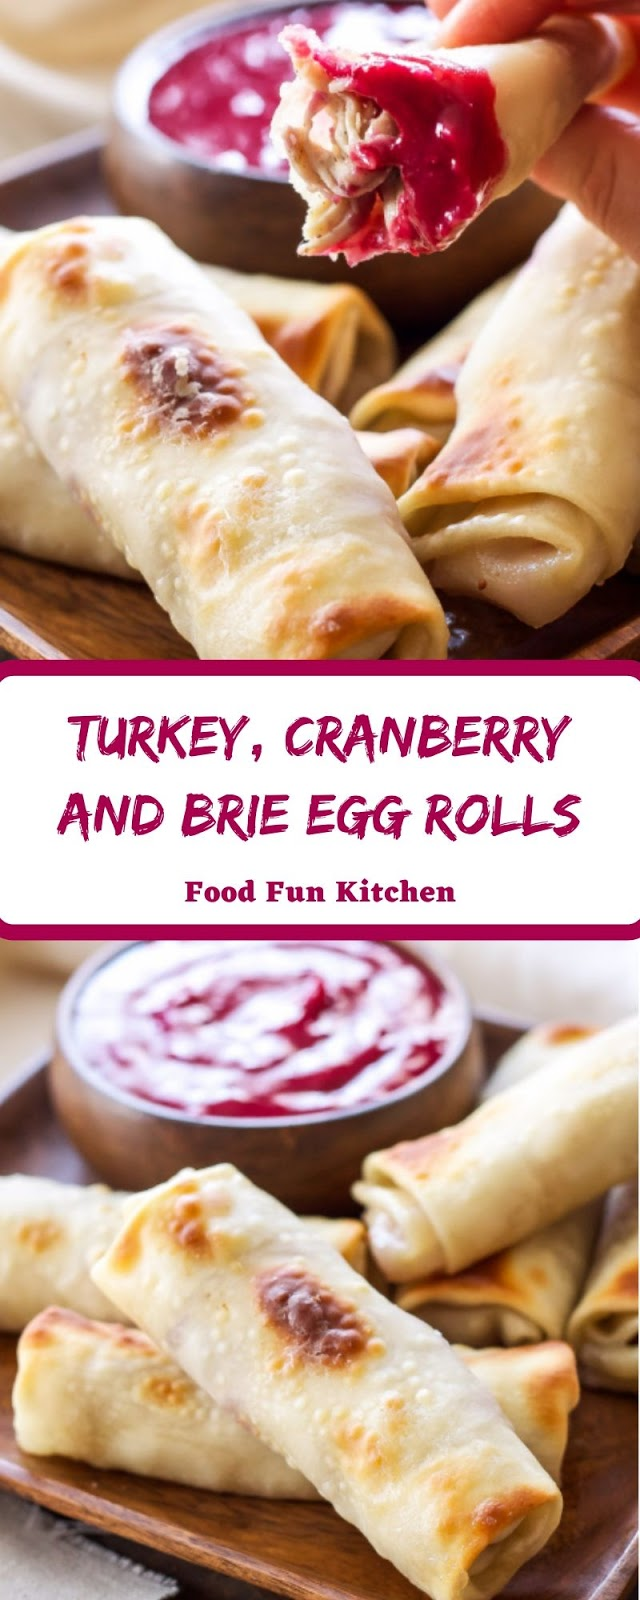 TURKEY, CRANBERRY AND BRIE EGG ROLLS